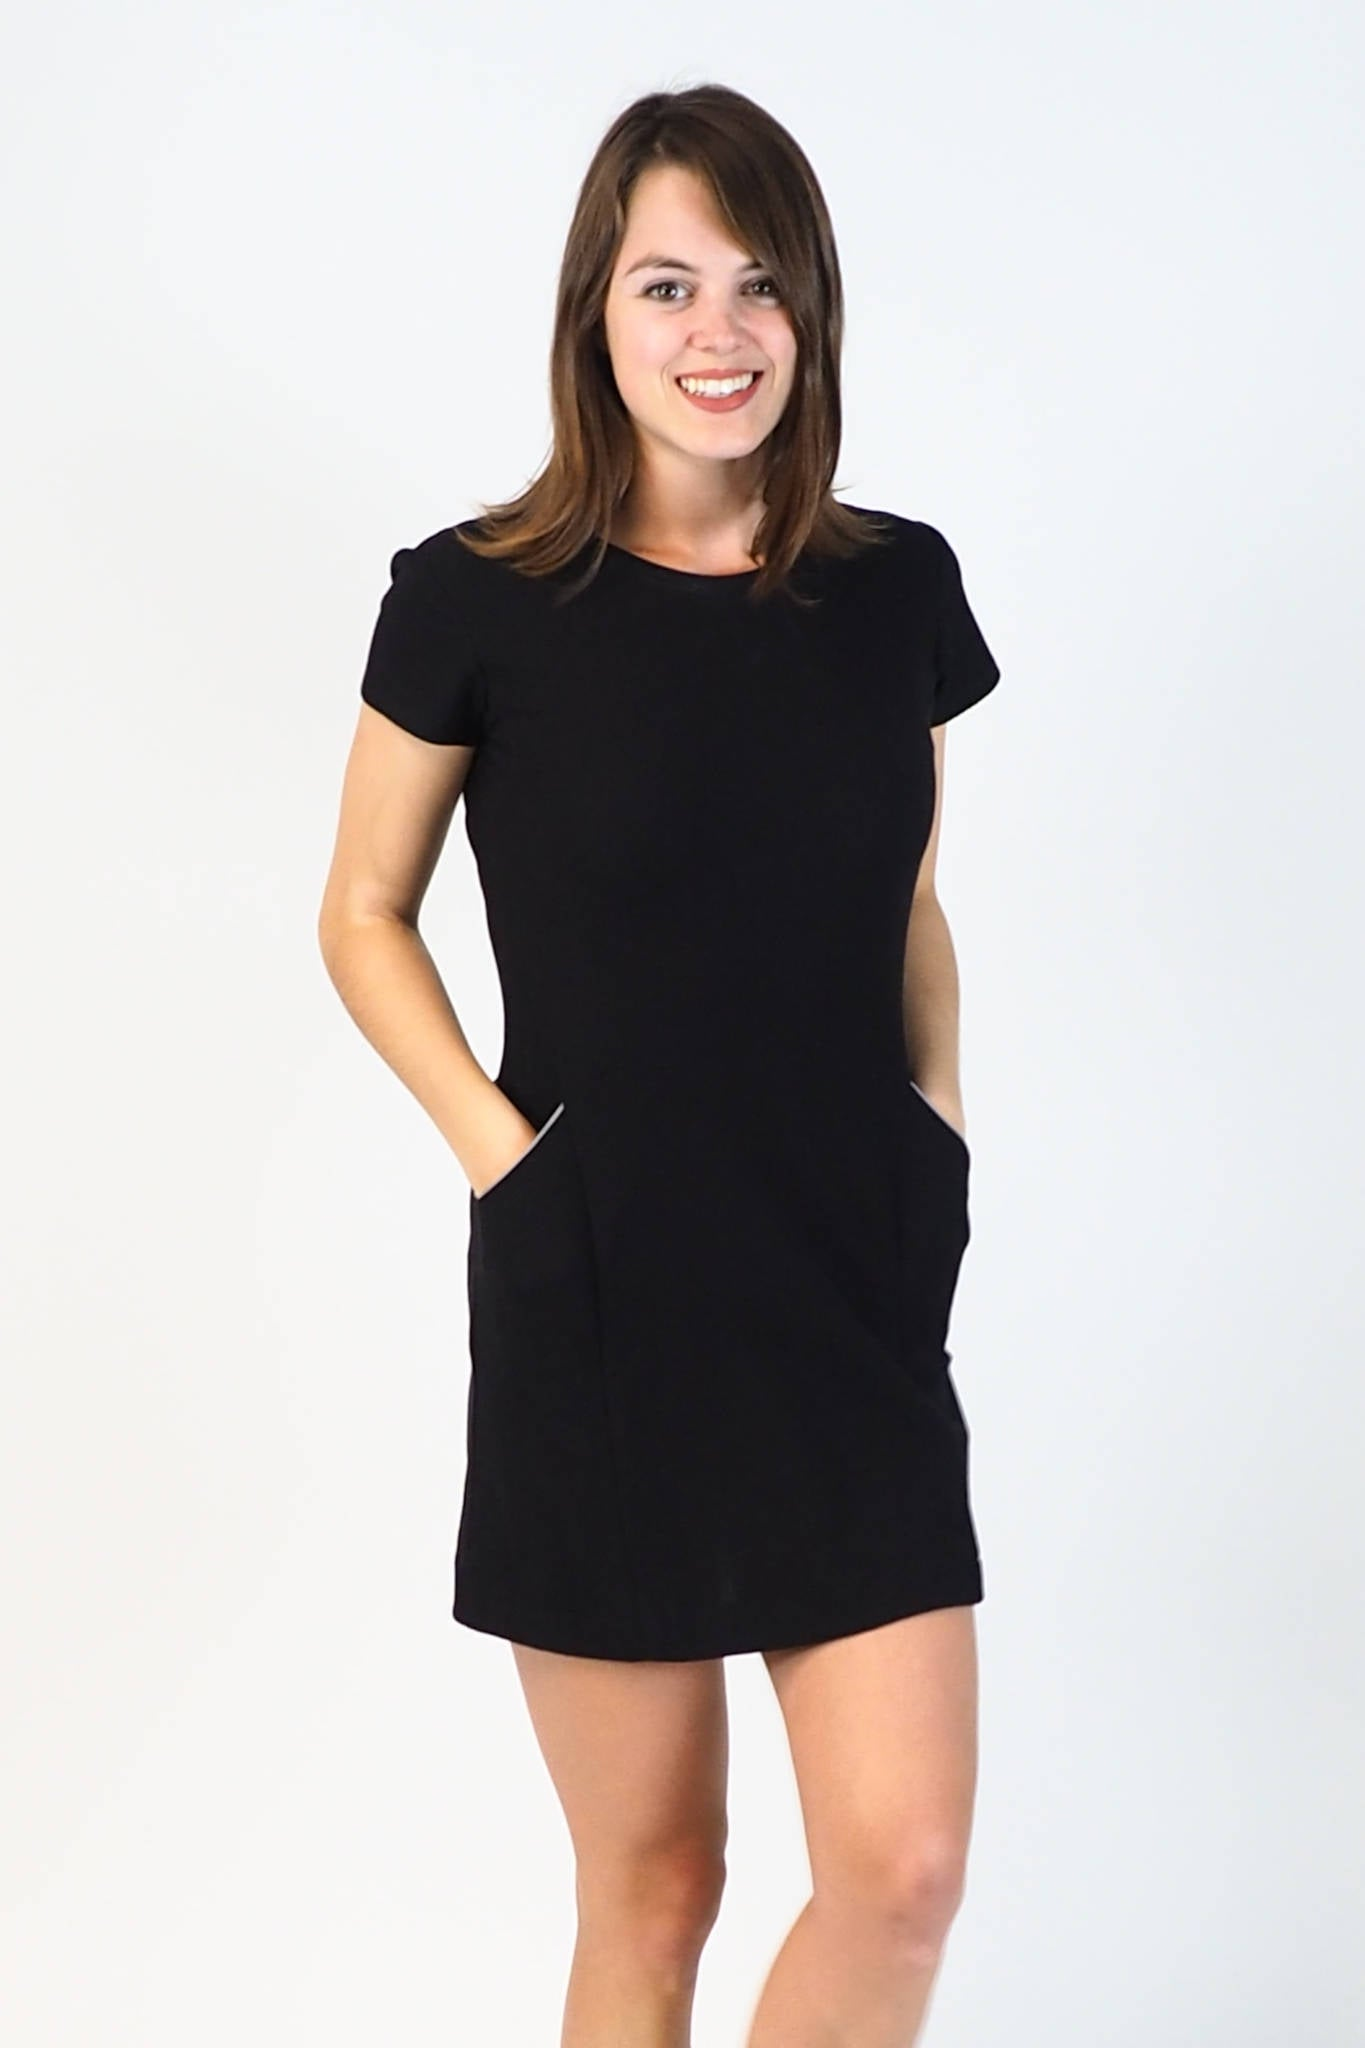 Upside Cyclestyle Women's Tennis Dress in Black Cotton on model